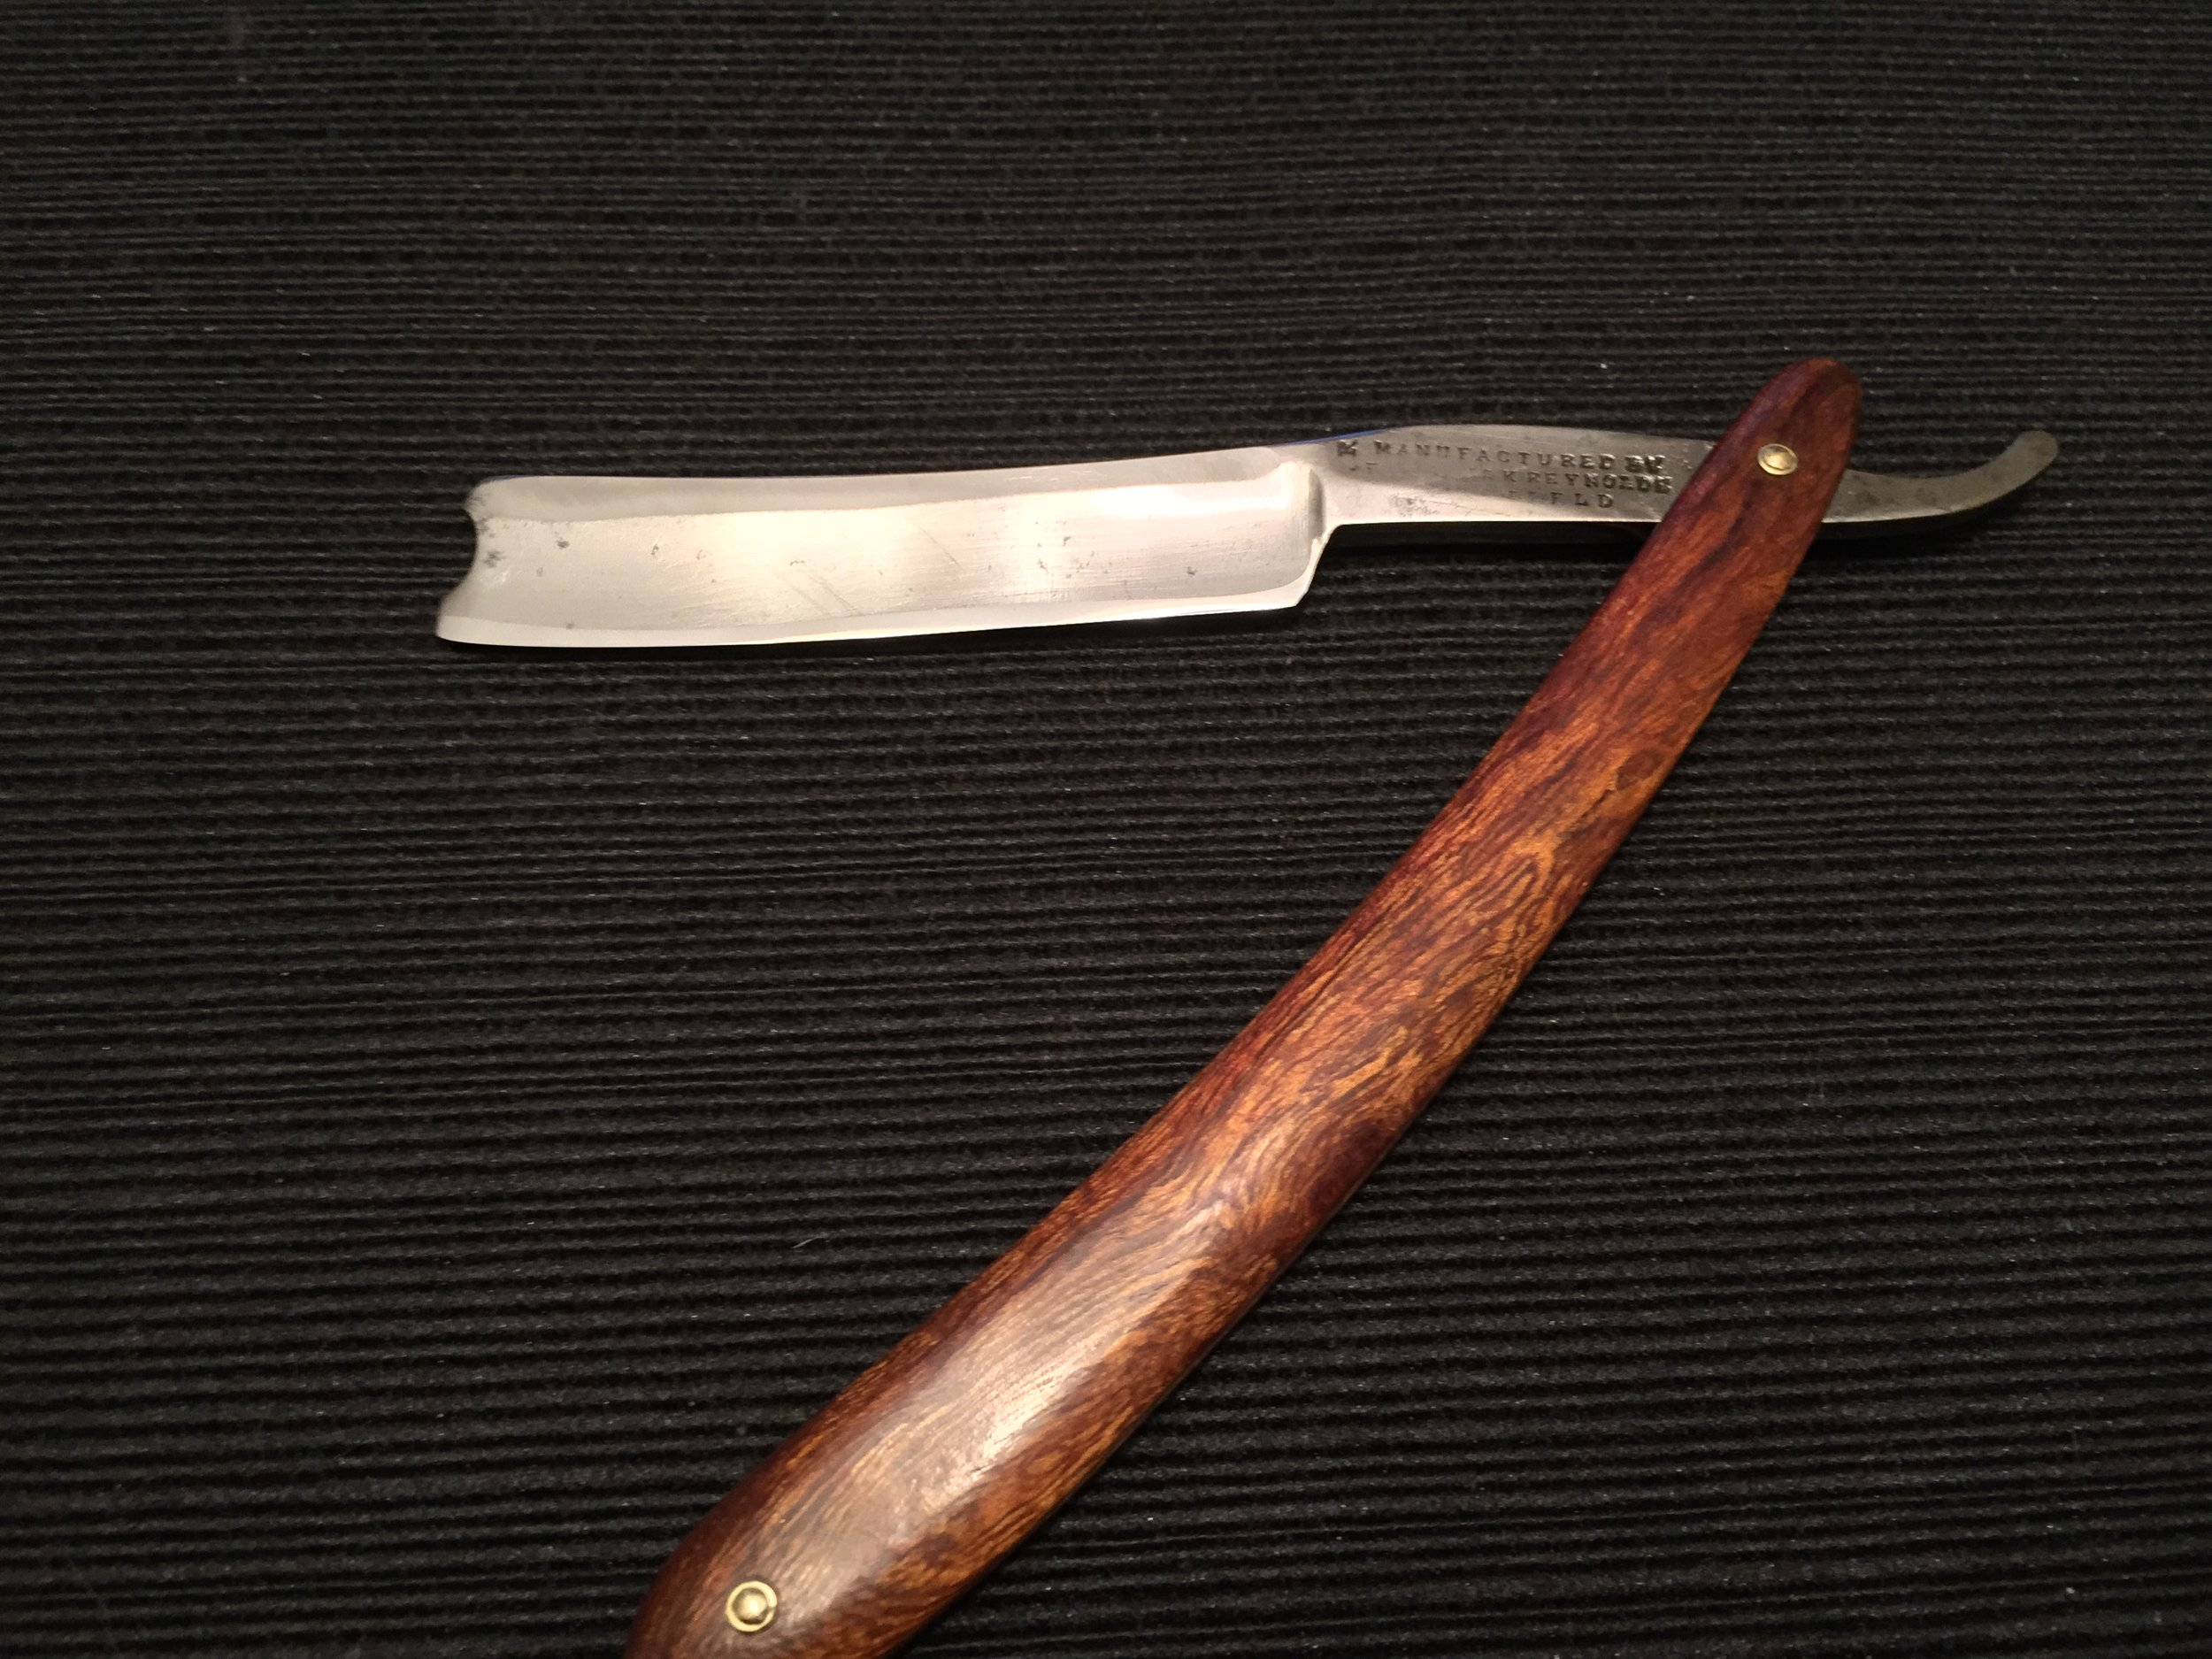 The Frederick Reynolds near wedge straight razor with barber's notch as it came out of the box from Portland Razor Company.